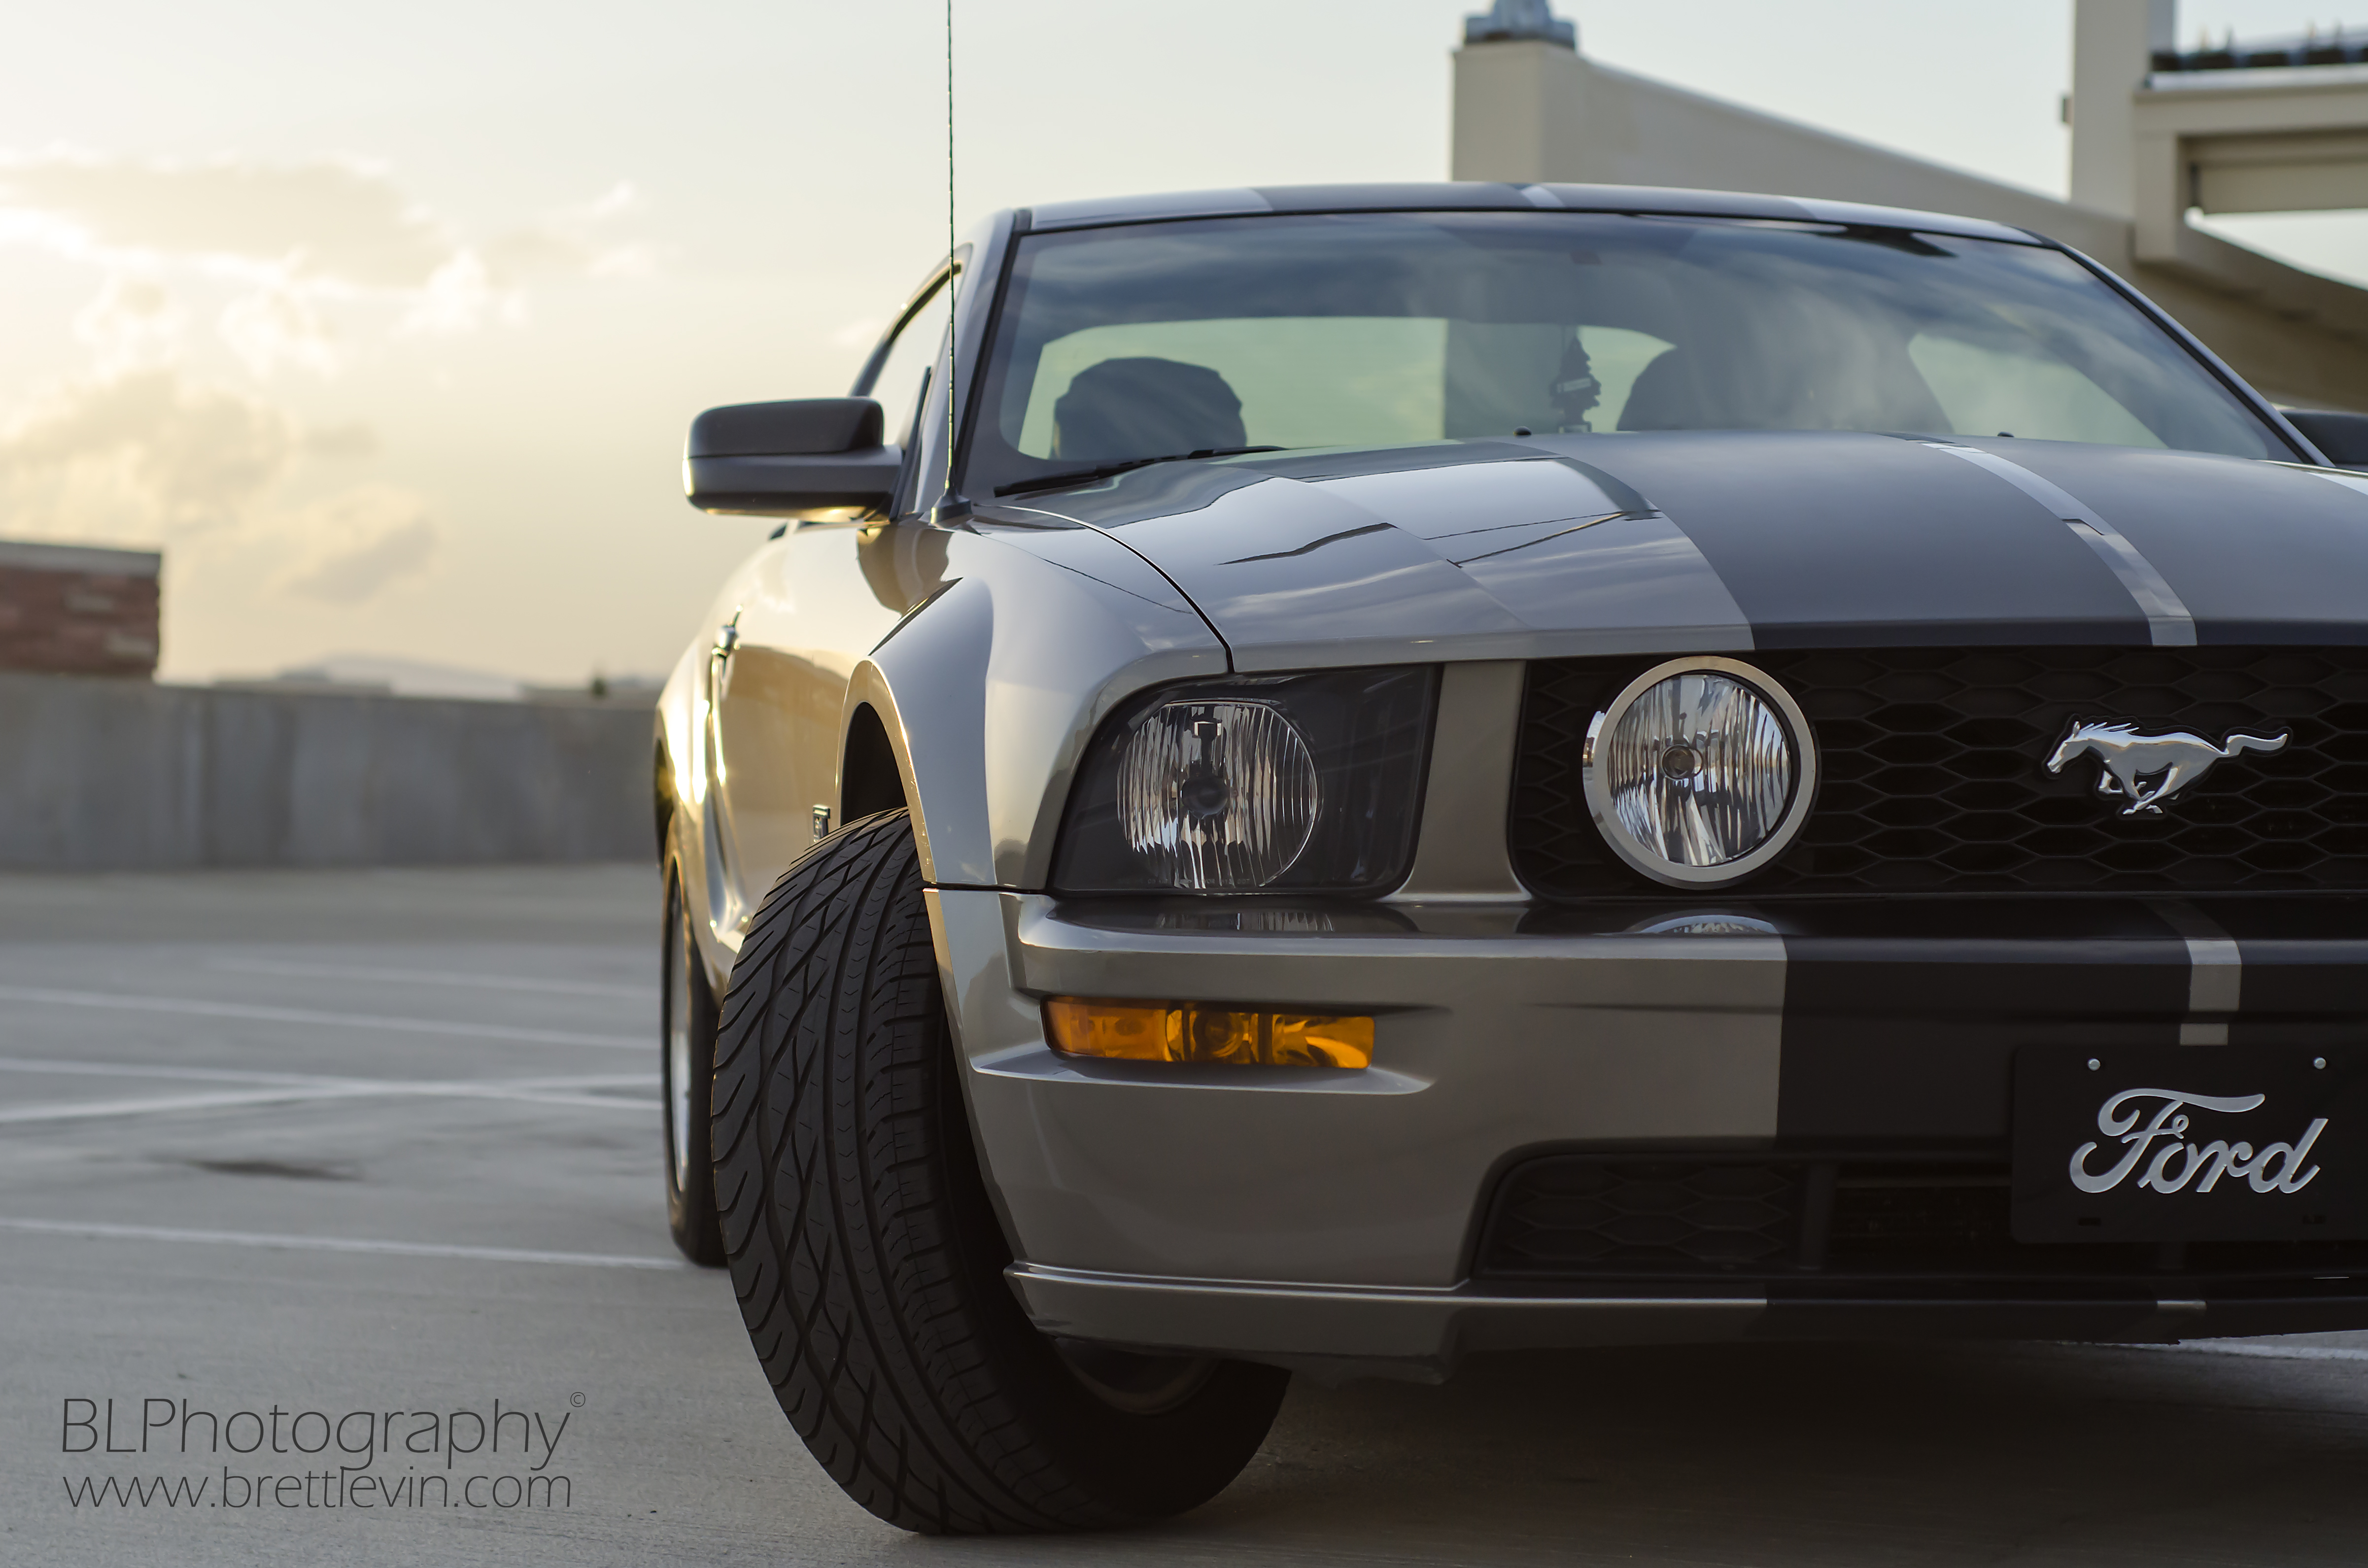 119465 download wallpaper Cars, Ford Mustang Gt, Ford, Headlight, Front View screensavers and pictures for free